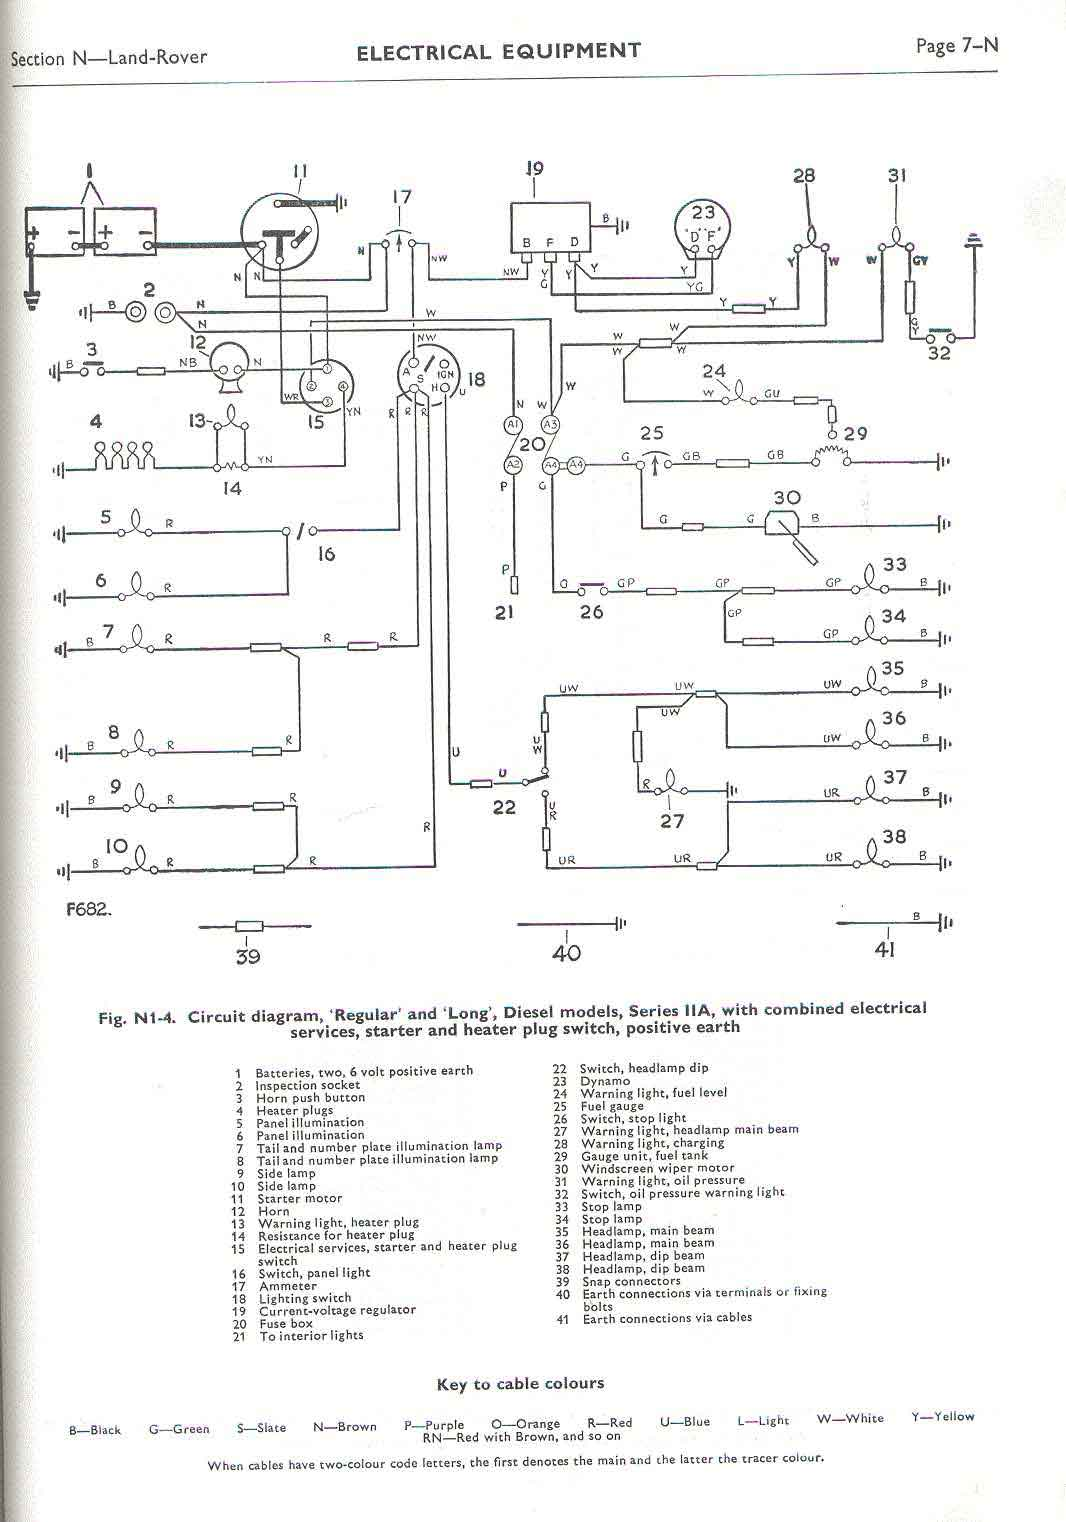 land rover county wiring diagram land rover gems wiring diagram land rover faq - repair & maintenance - series ...